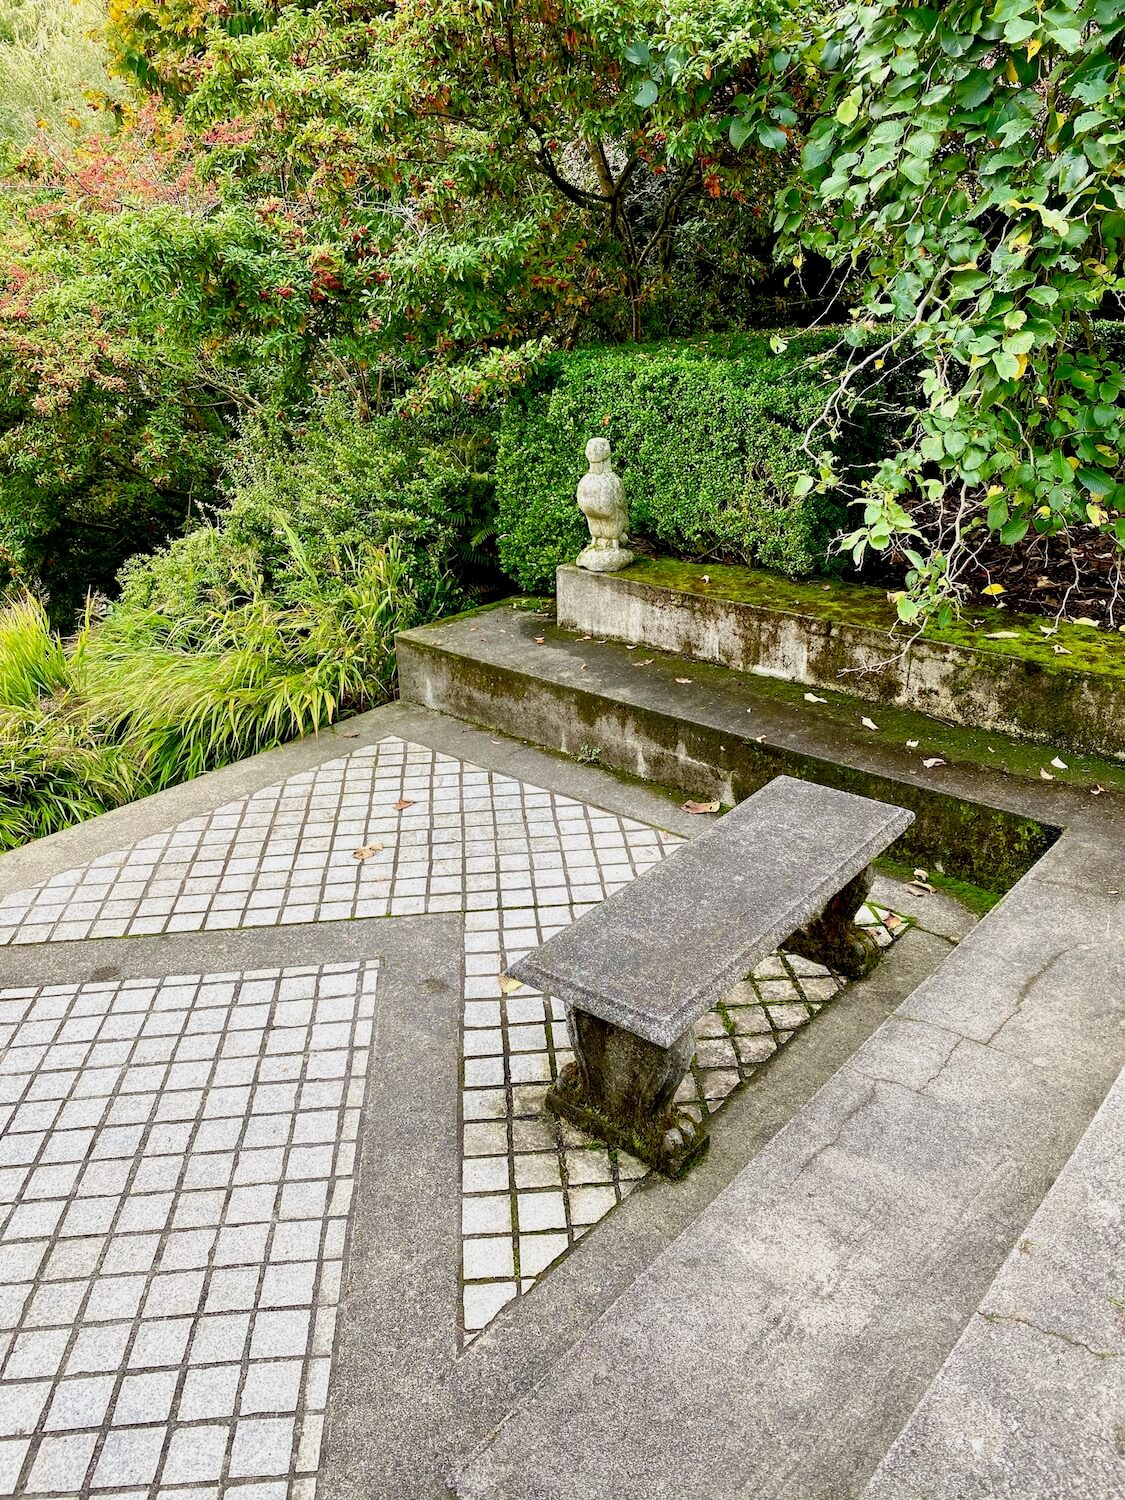 A concrete bench with ornate feet sits on a grid of square bricks and is surrounded by green shrubbery.